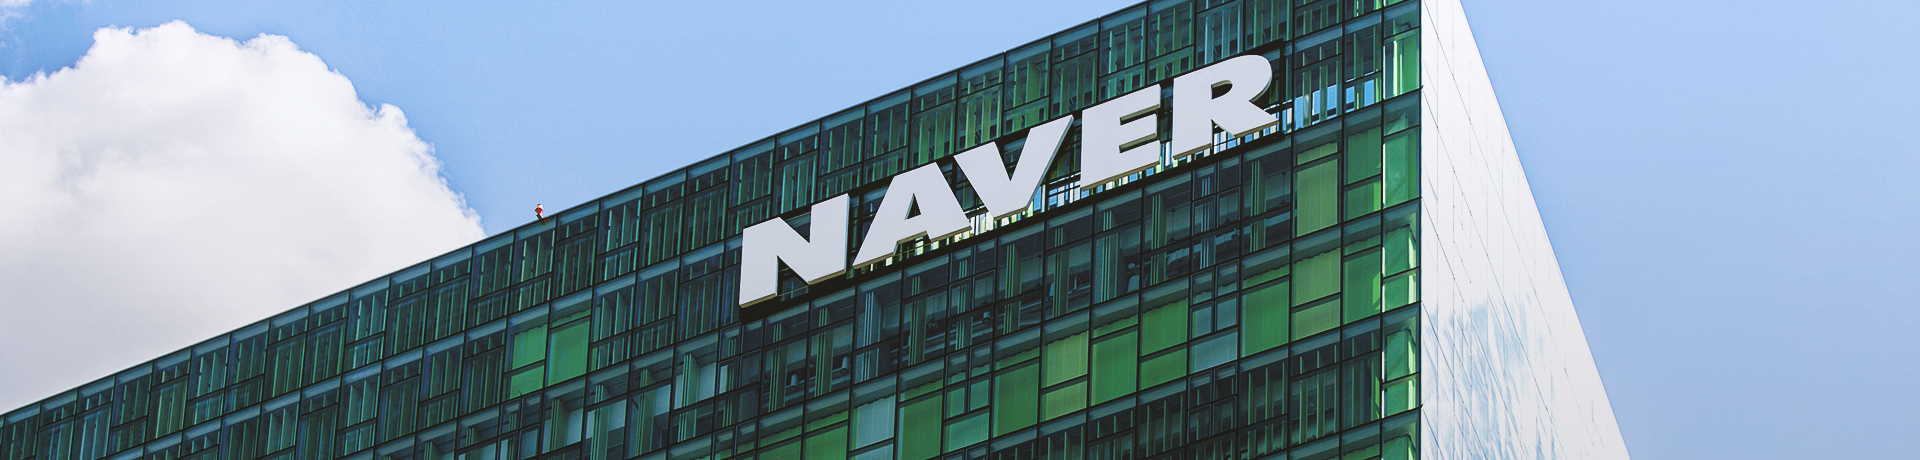 NAVER Offices image